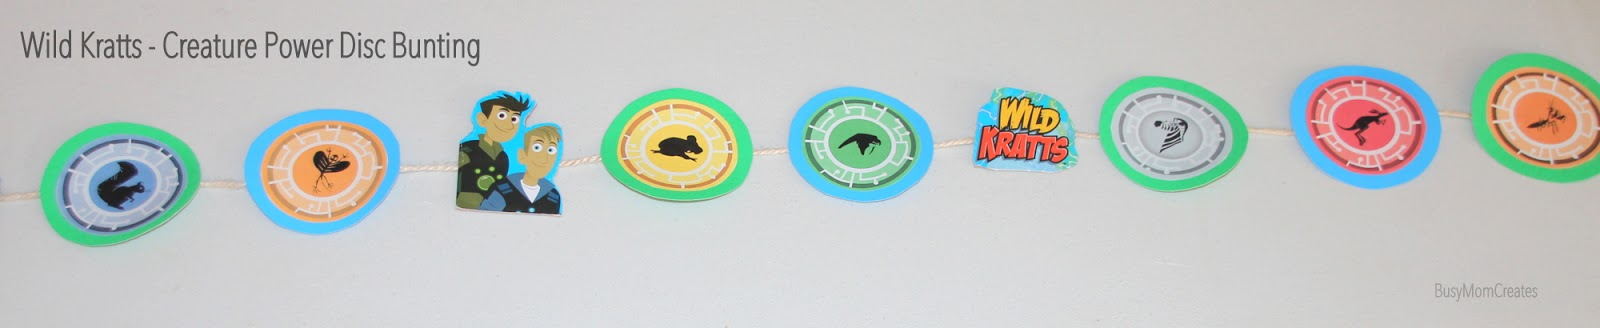 picture about Wild Kratts Creature Power Discs Printable named Wild Kratts - Creature Electricity themed birthday bash